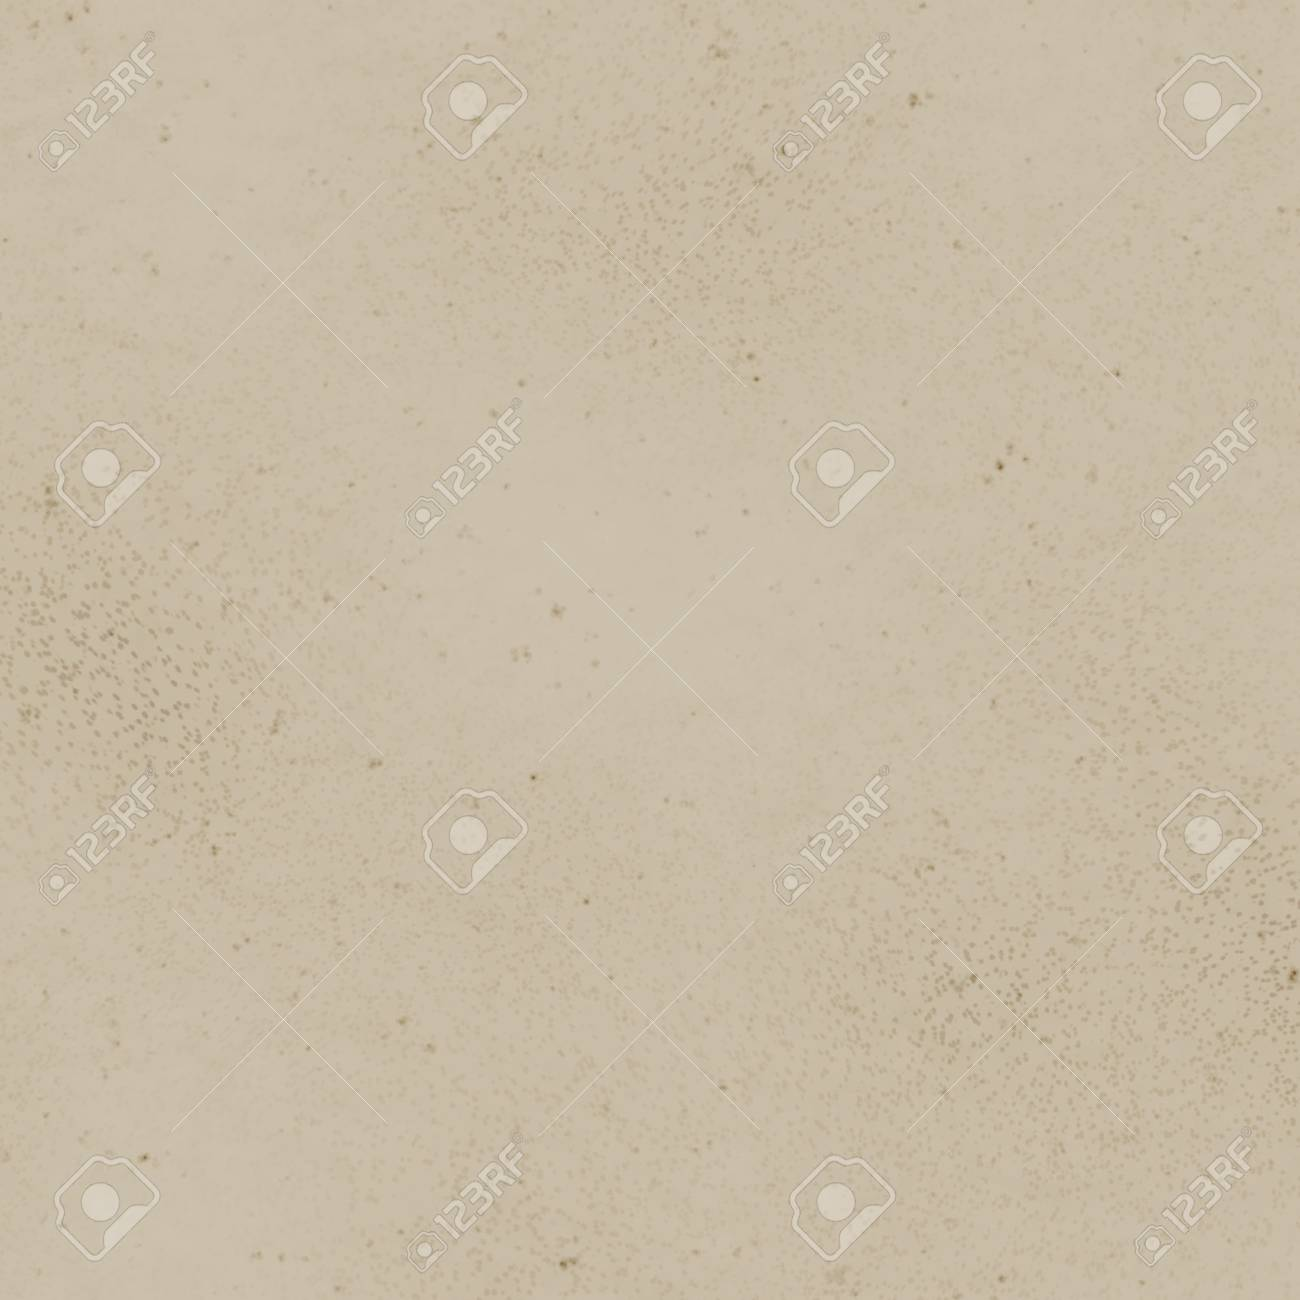 paper background Stock Photo - 22256966